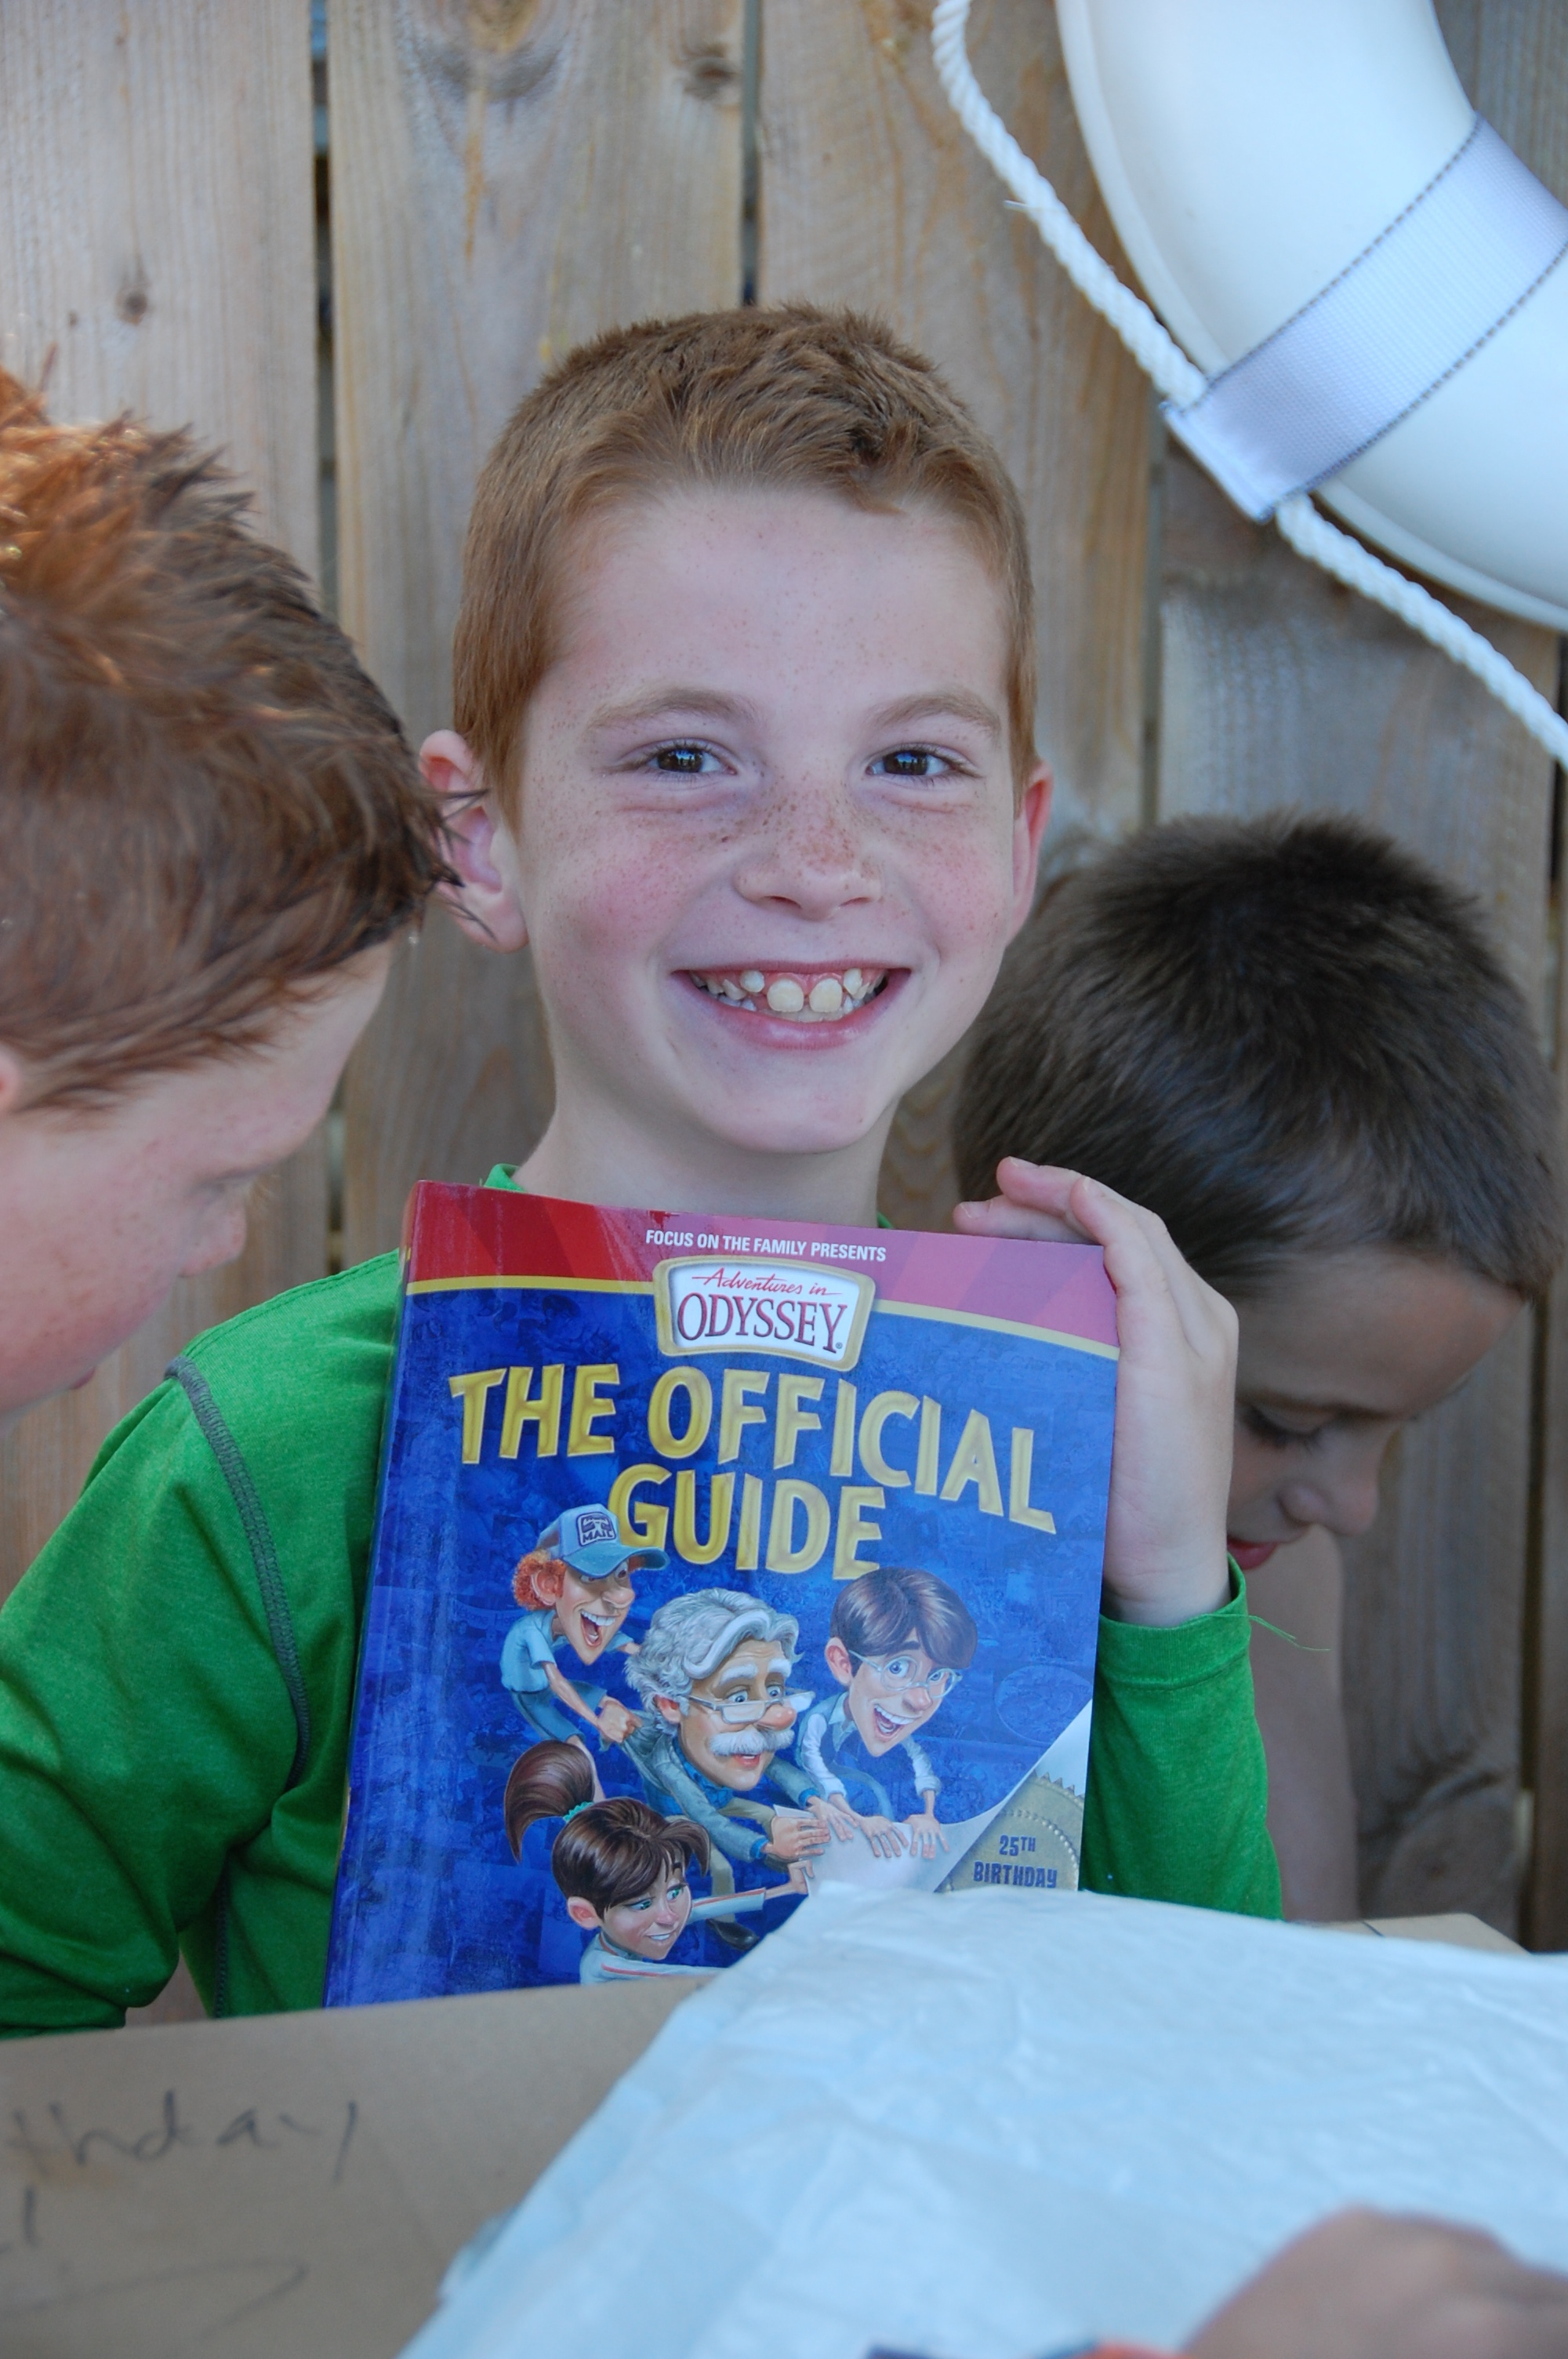 The Official Guide for Adventures in Odyssey! He has read that countless times.